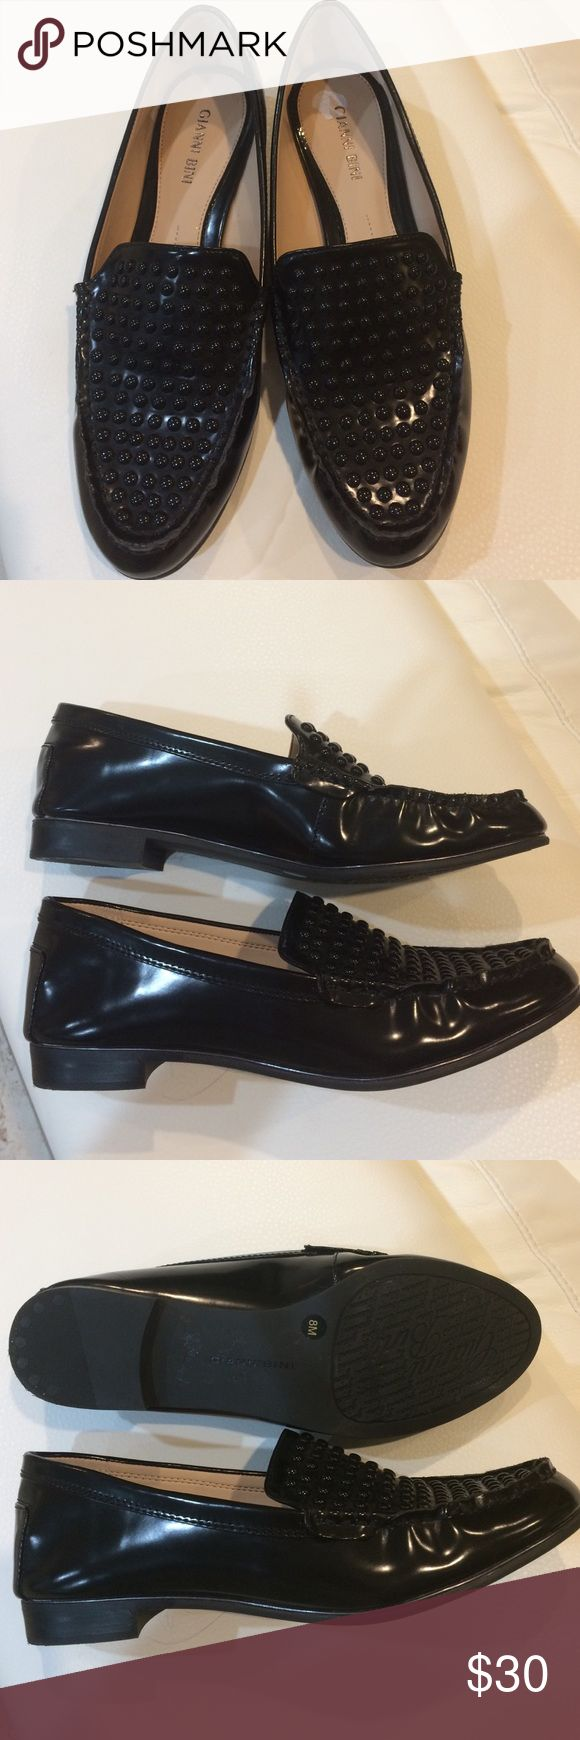 NWOT Gianni Bini studded loafers New Gianni Bini black man made loafer studded. Gianni Bini Shoes Flats & Loafers